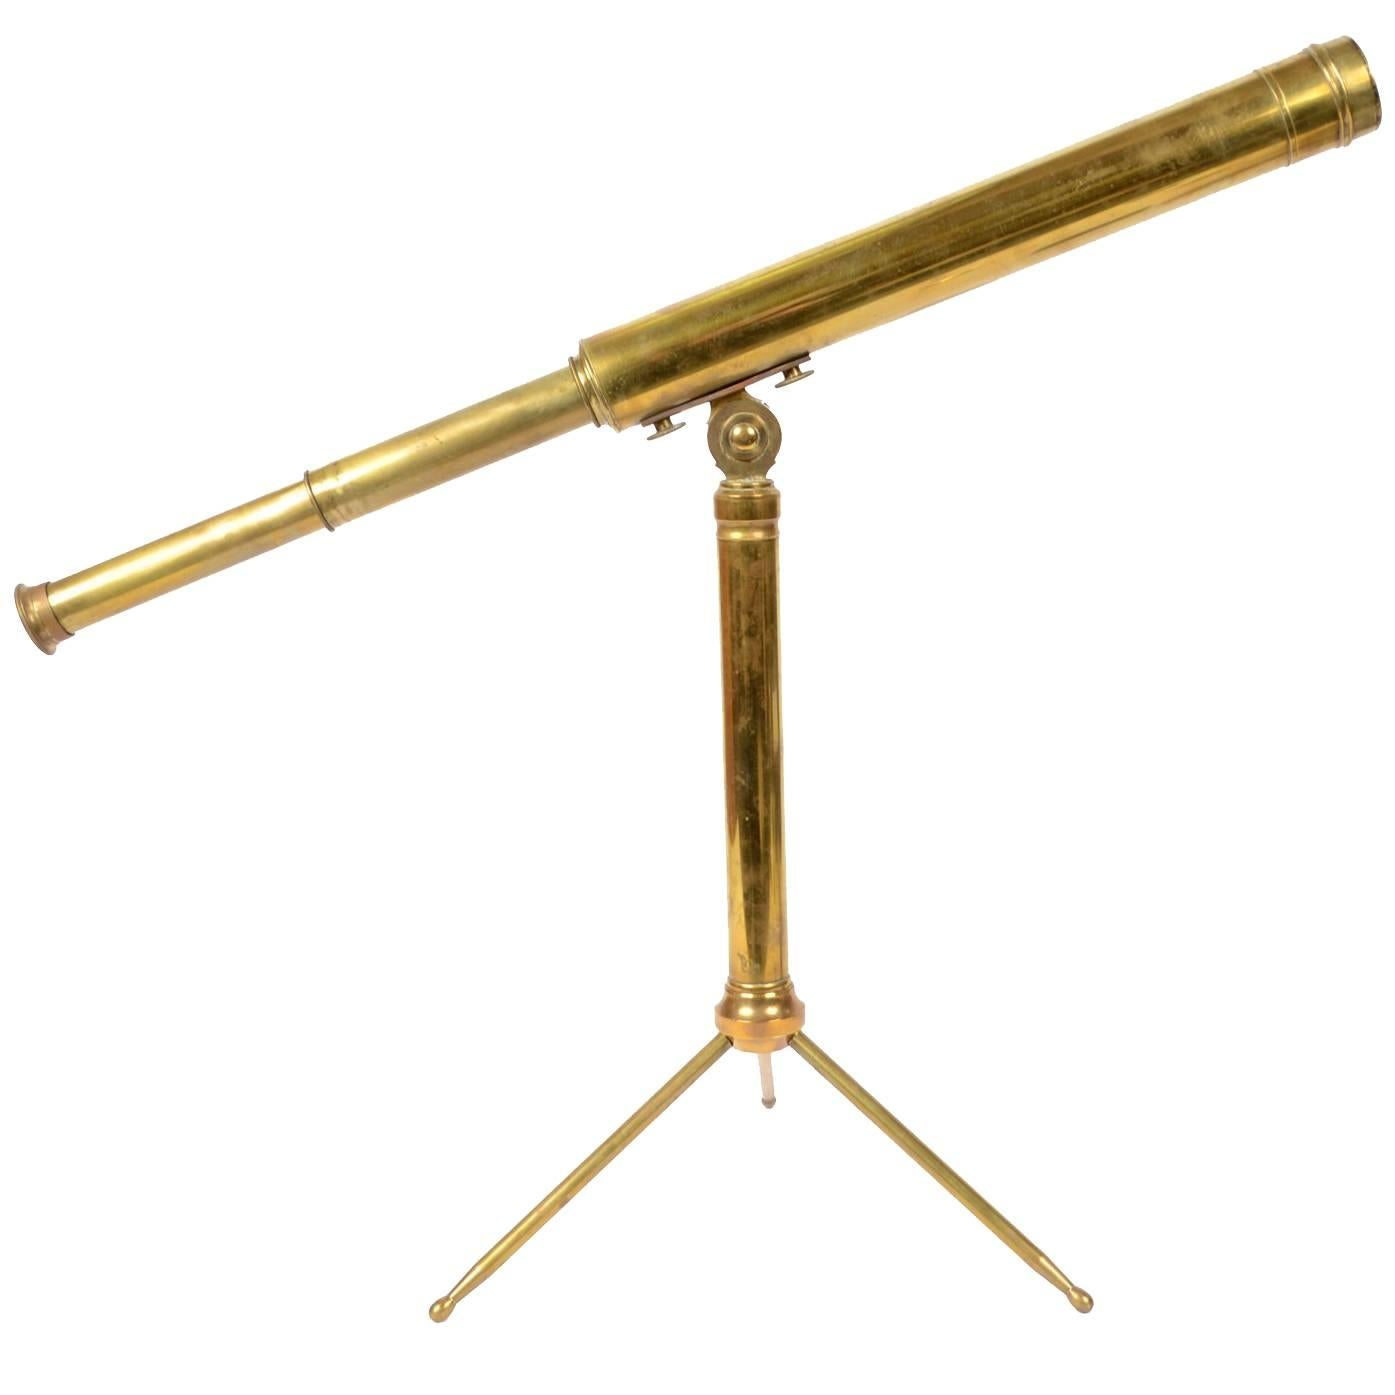 English Brass Telescope with Original Wooden Box Second Half of the 19th Century